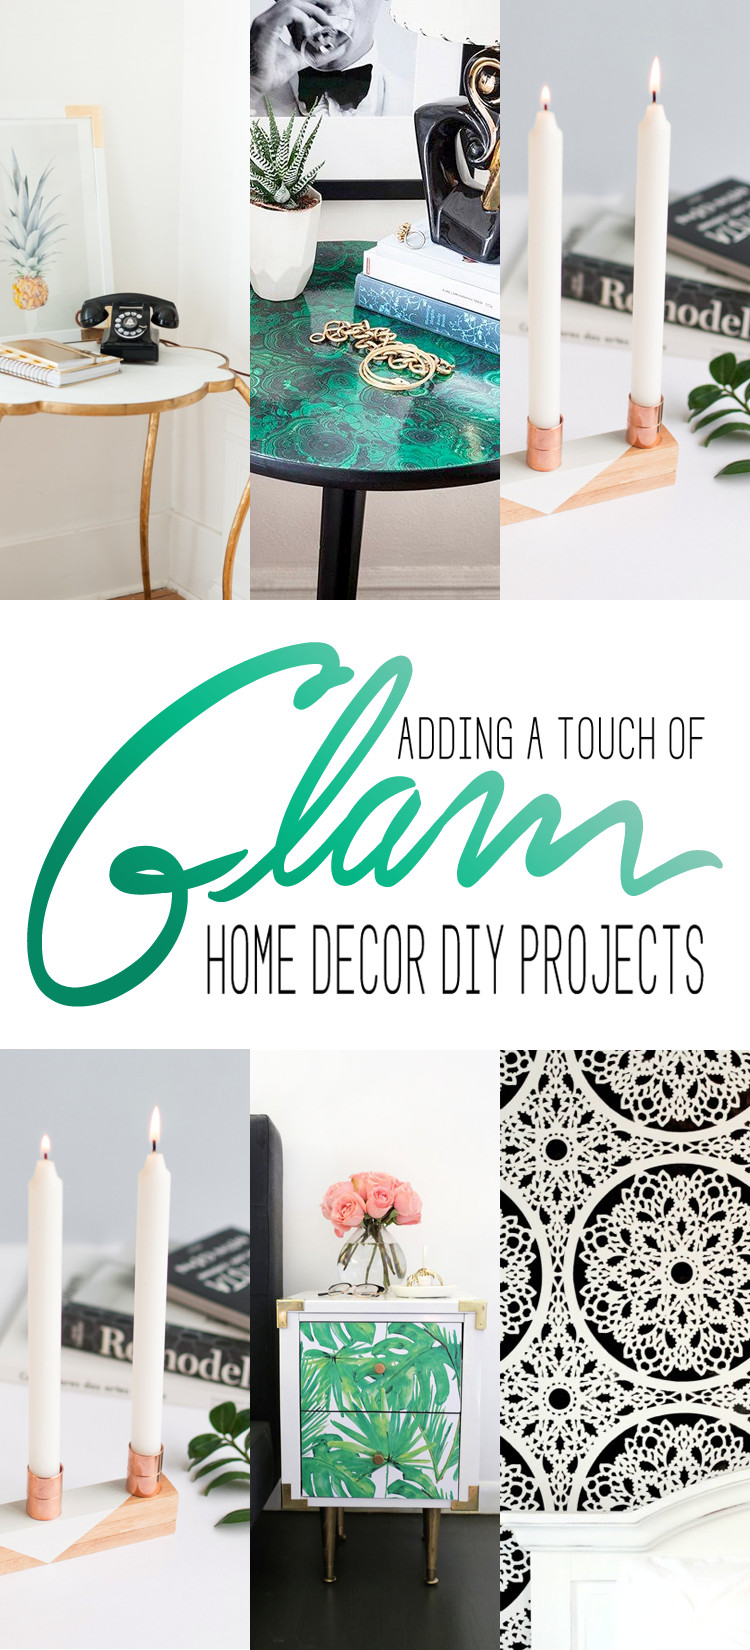 Diy Projects for Home Decor Fresh touch Of Glam Home Decor Diy Projects the Cottage Market